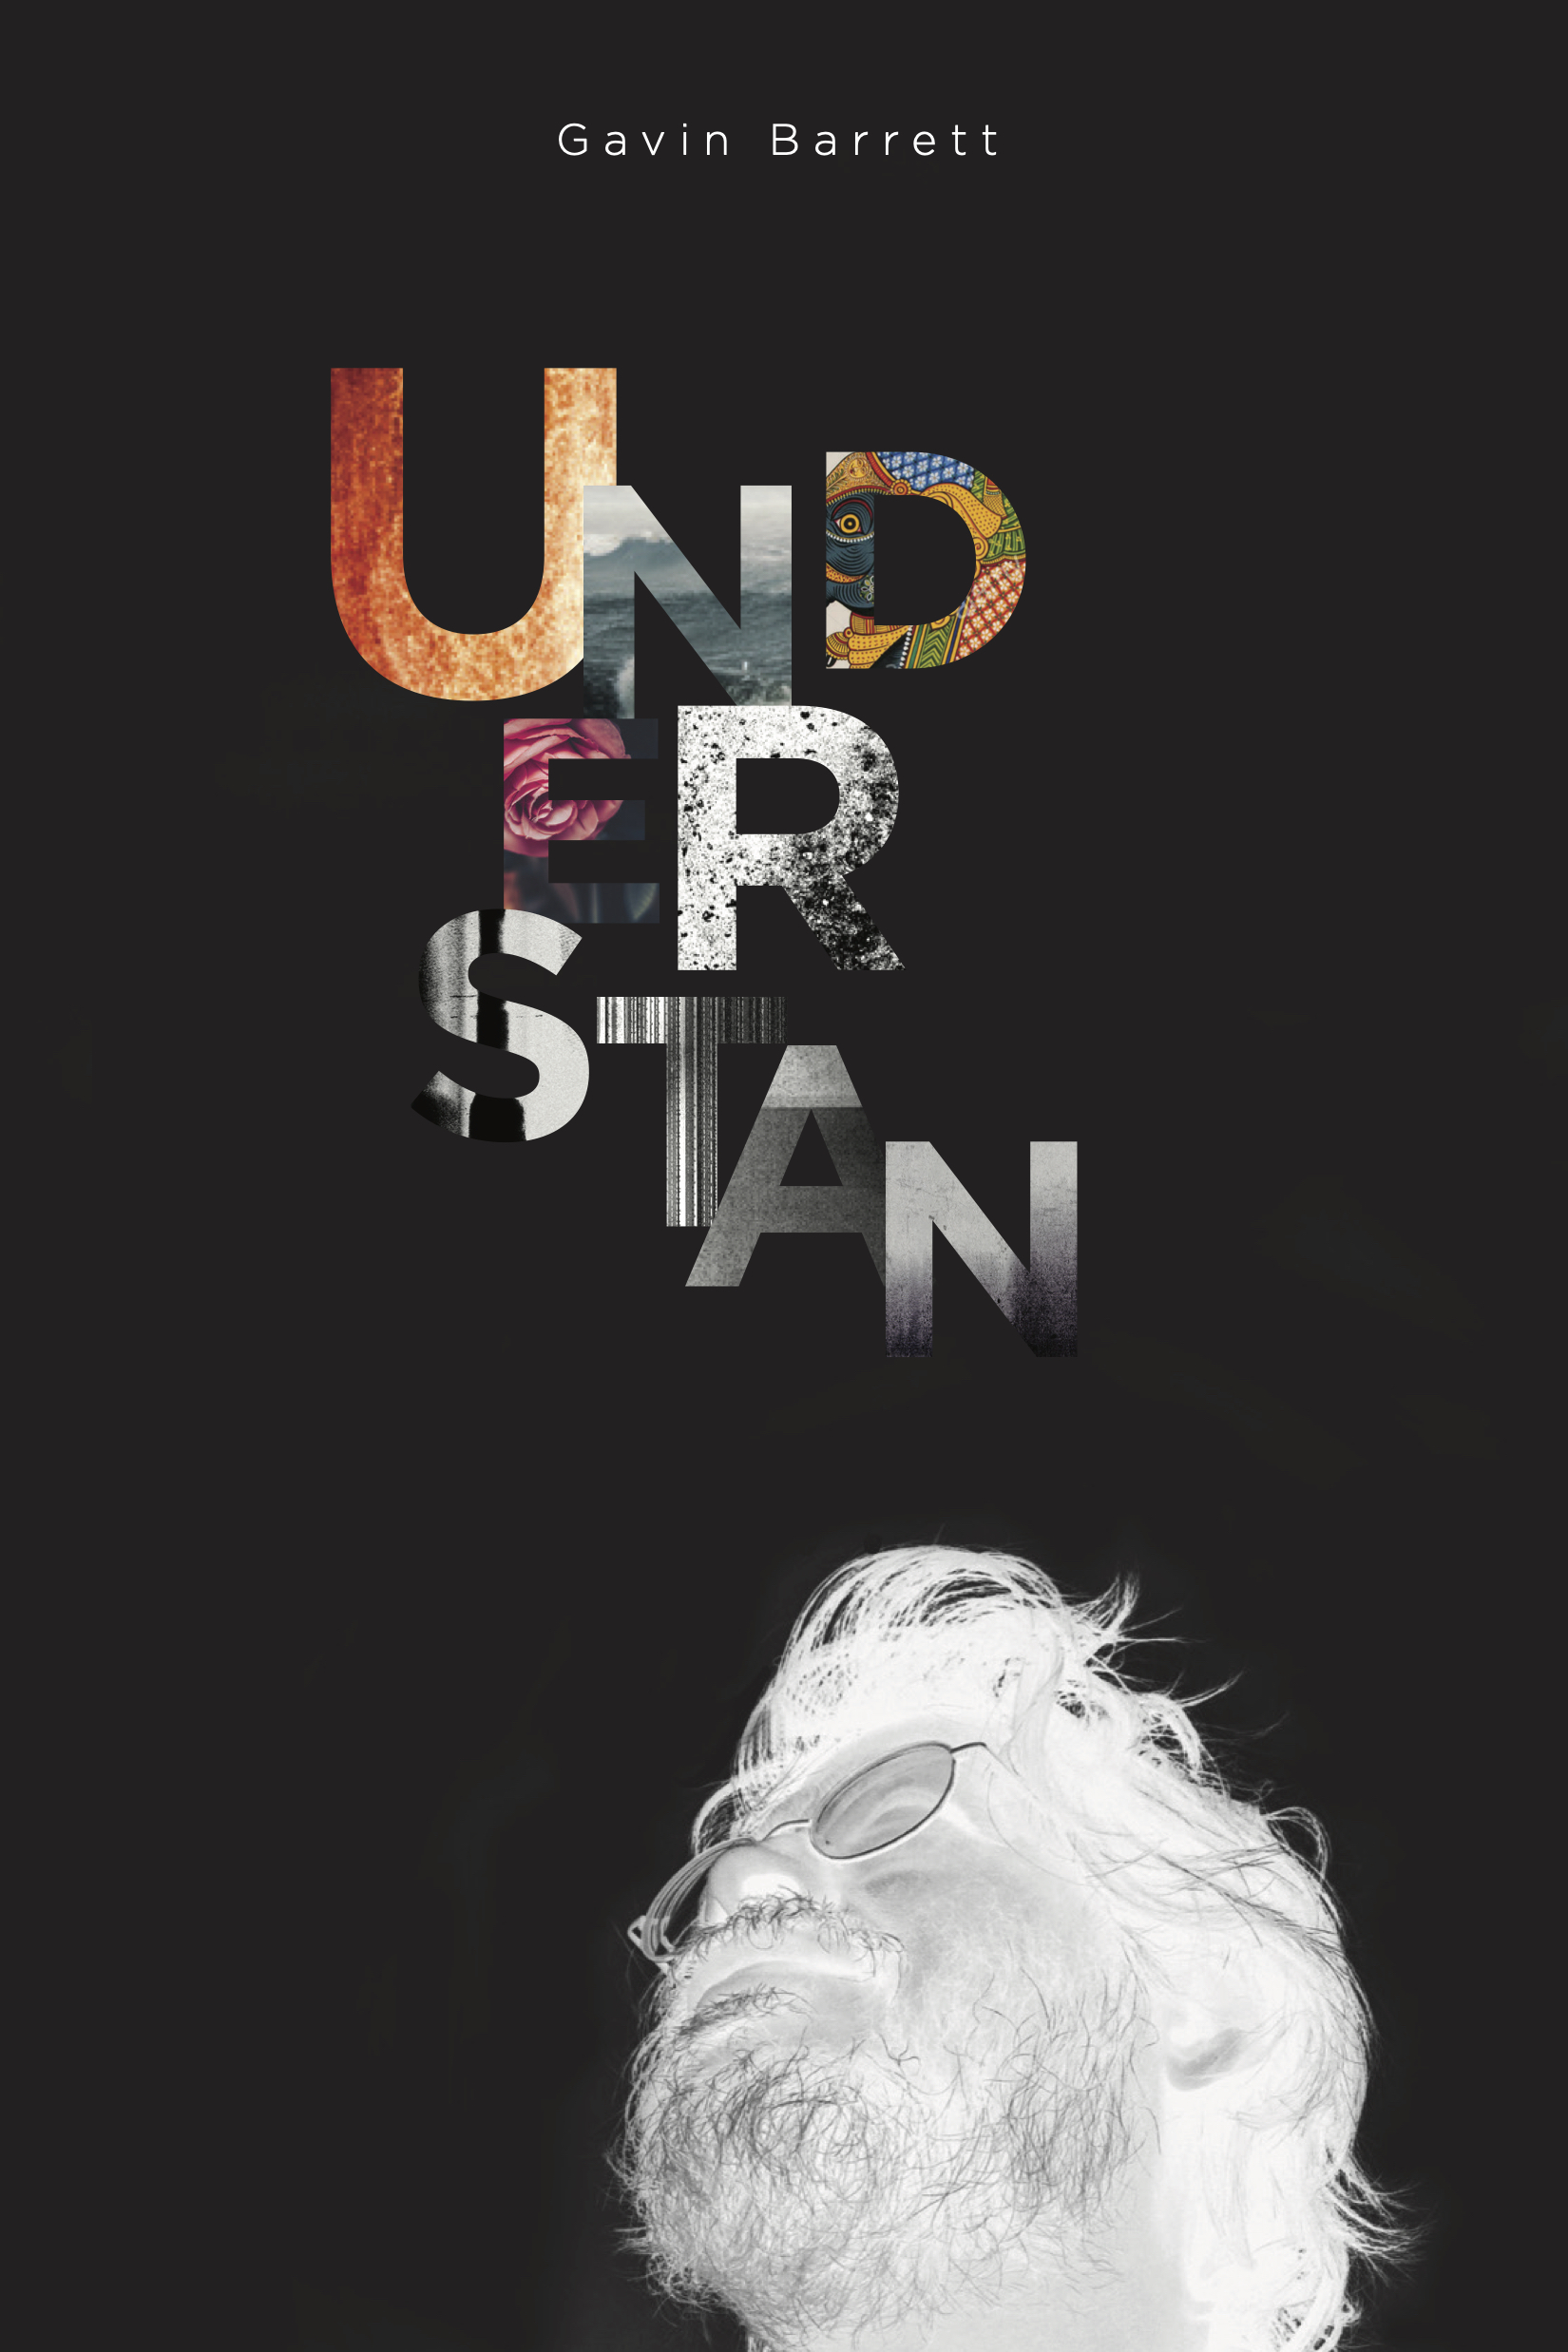 Cover to Gavin Barrett's book of poems Understan, with an image of the poet as a negative and a letter cloud of the letters from the title